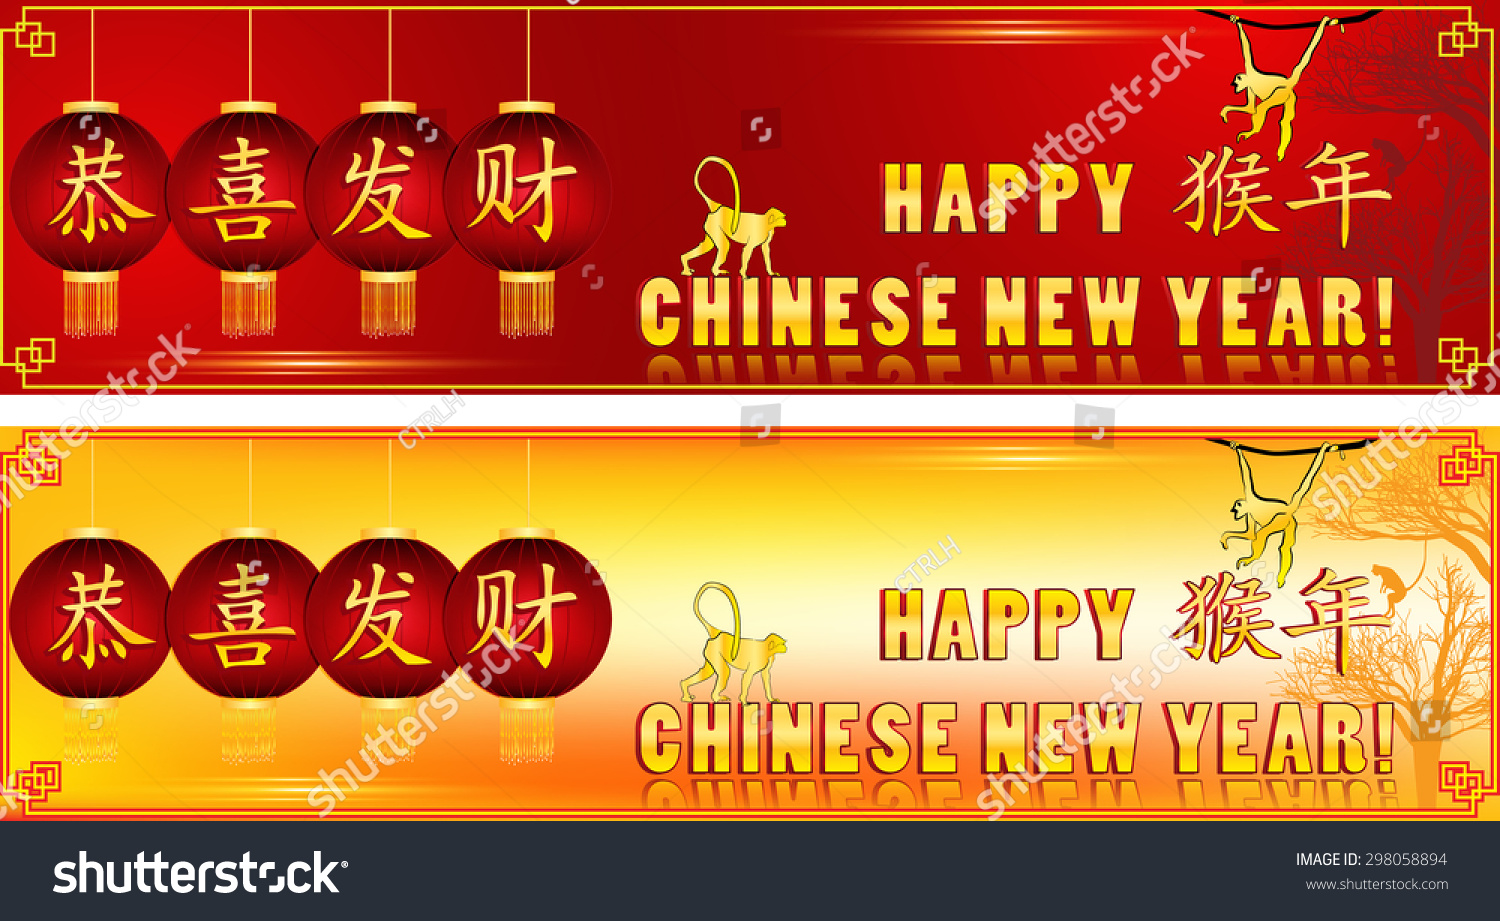 essay chinese new year festival Free and custom essays at essaypediacom take a look at written paper - sample informative outline - chinese new year.